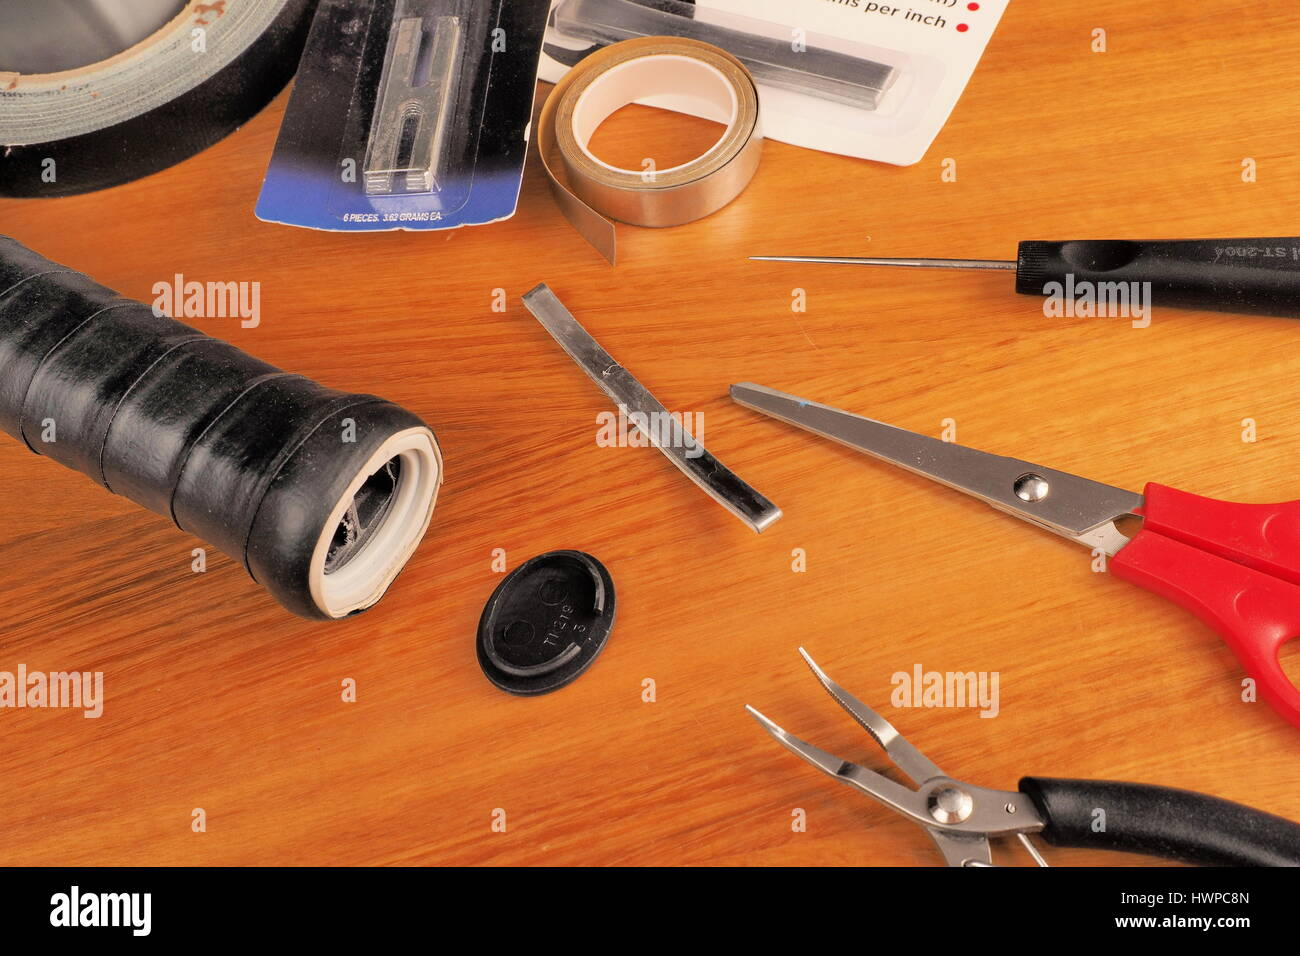 Melbourne, Australia, 2015, May 9: Tennis racquet handle prepared for lead installation in the process of balancing - Stock Image